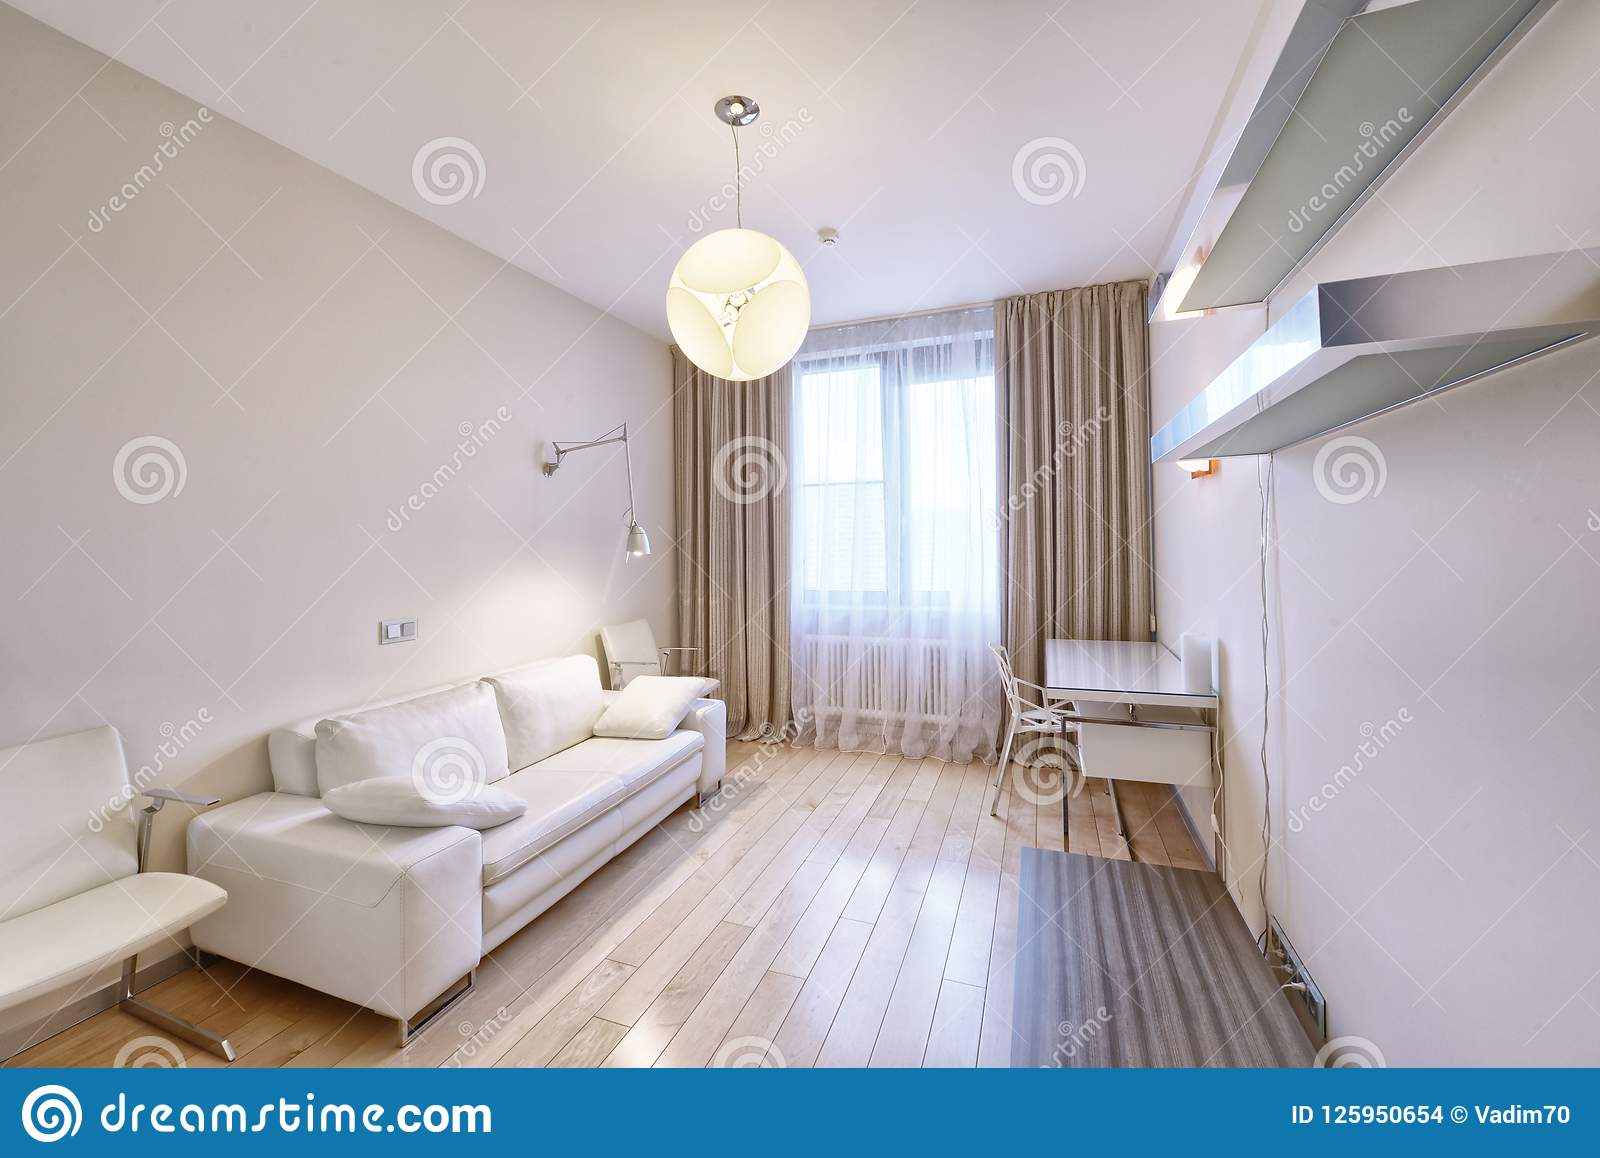 The interior of a modern apartment in white stock photo image